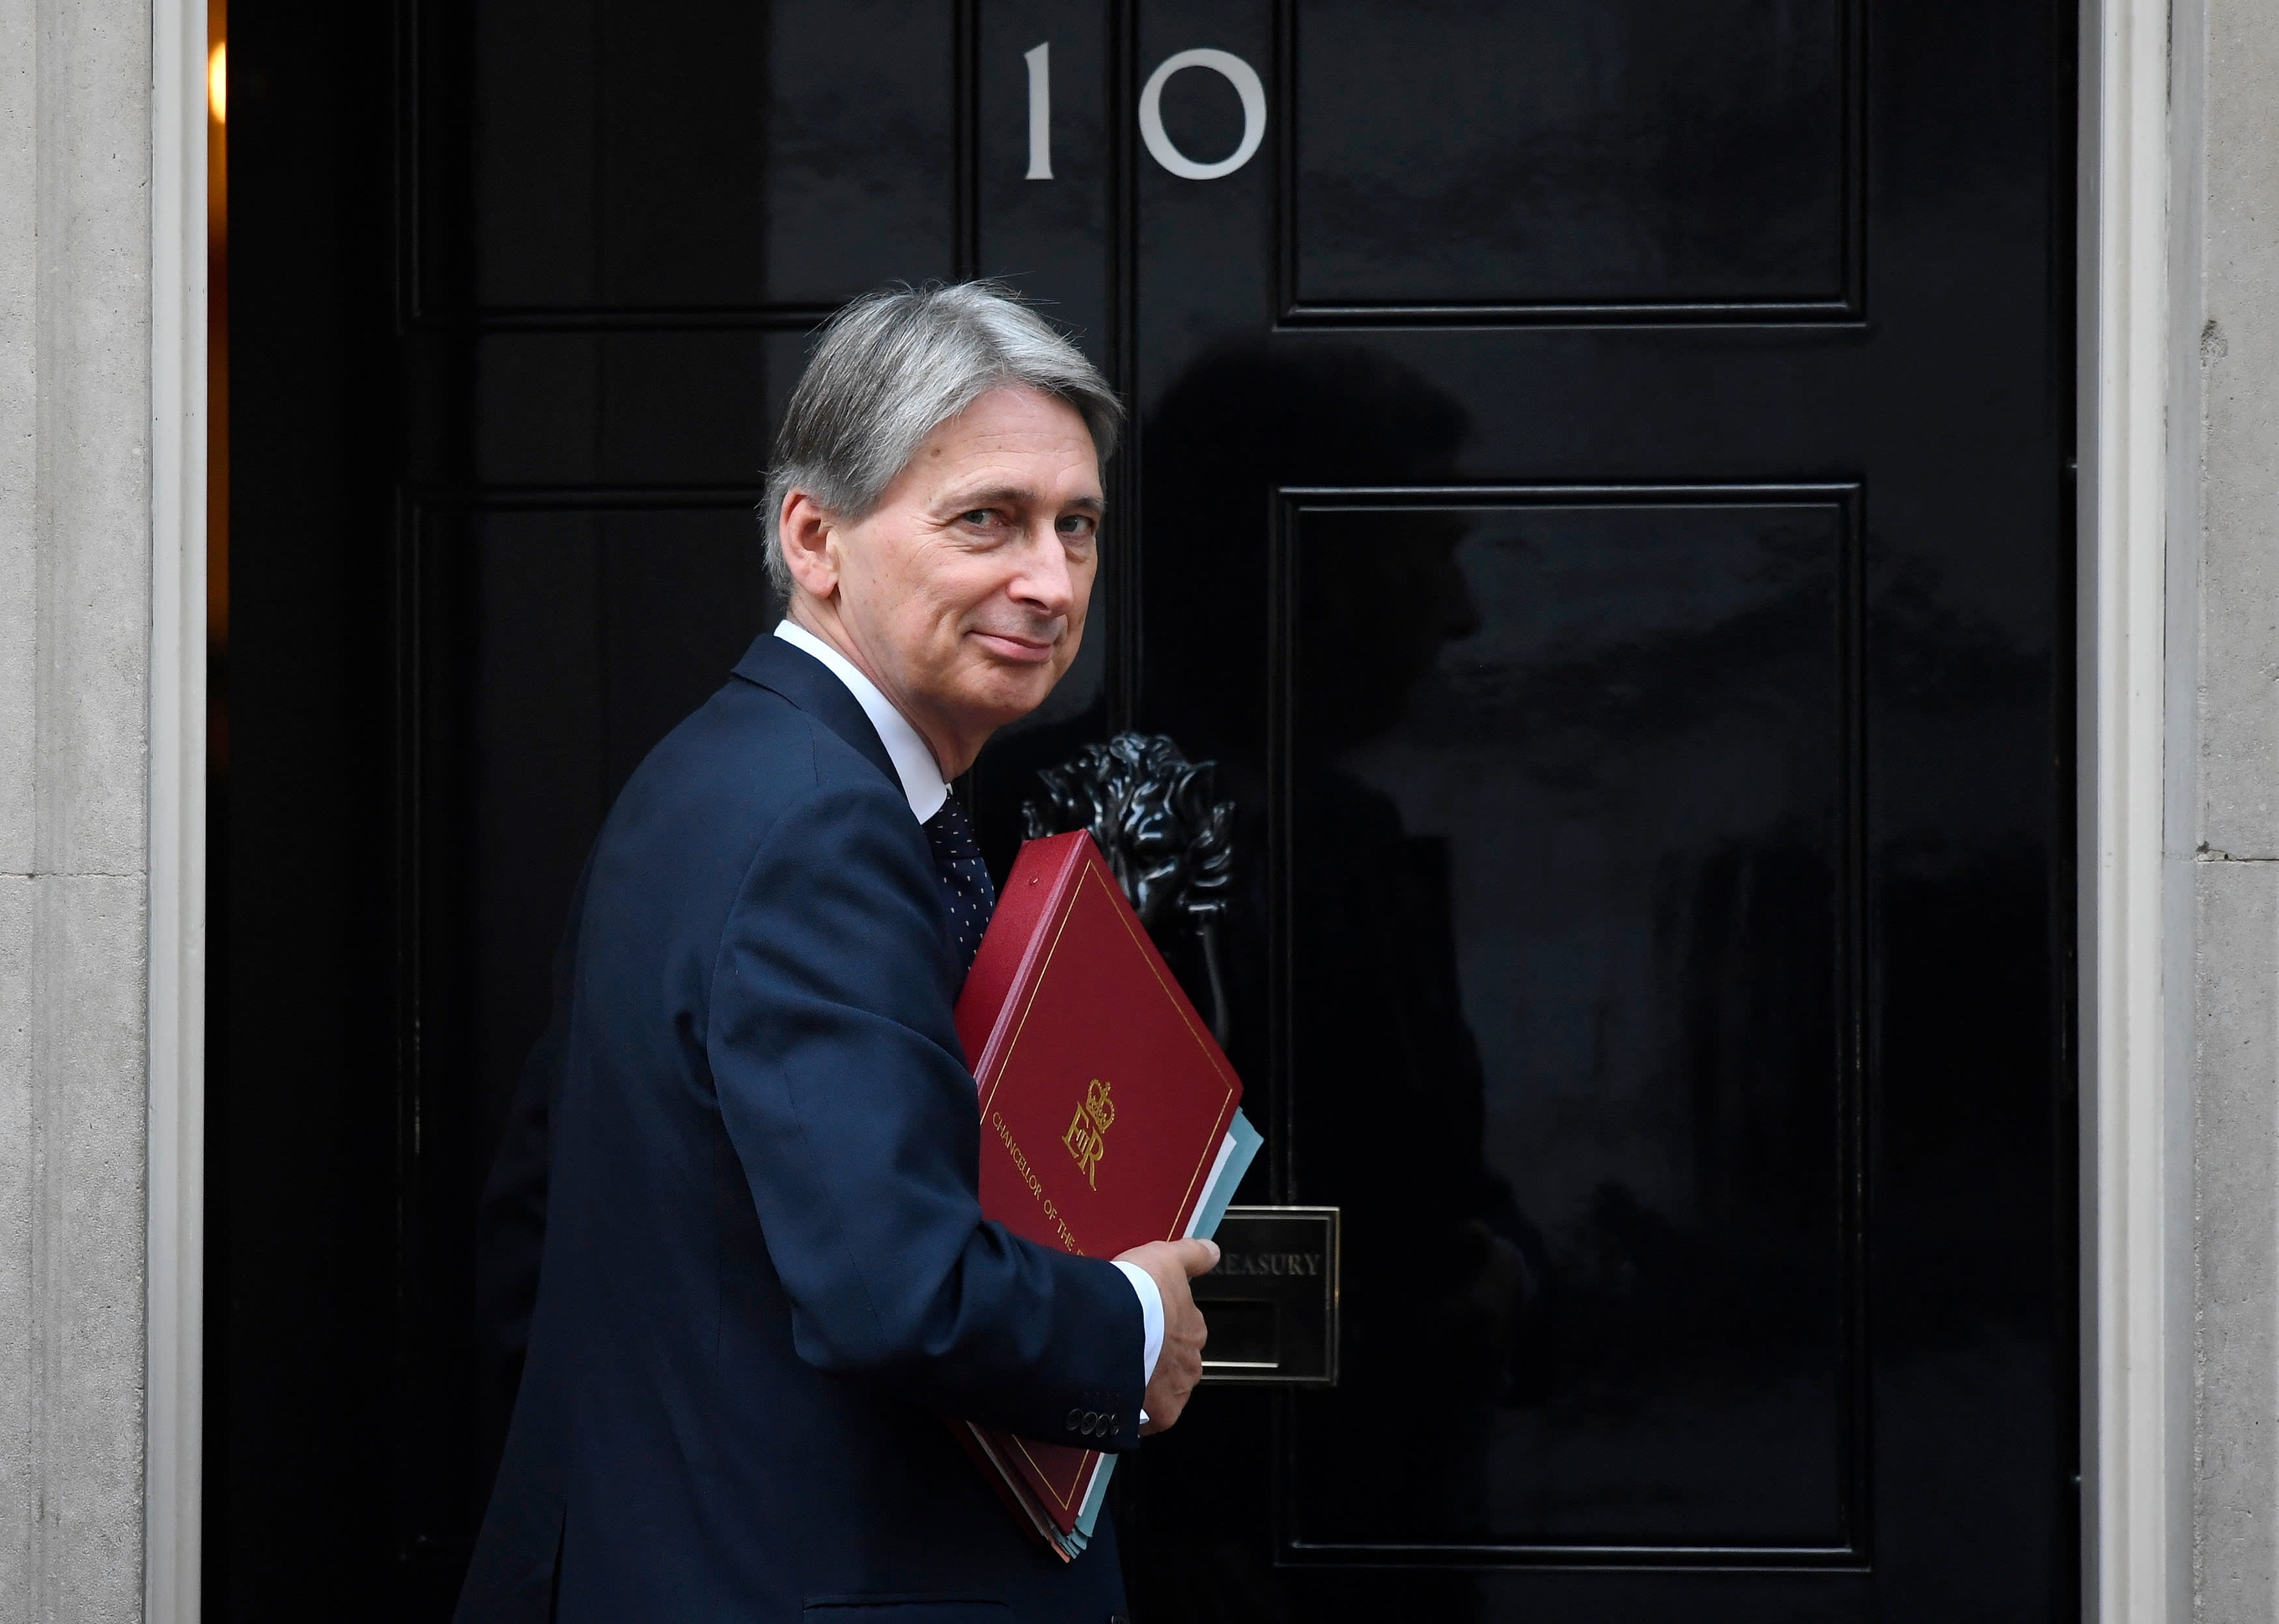 Hammond responds to criticism on Brexit analysis